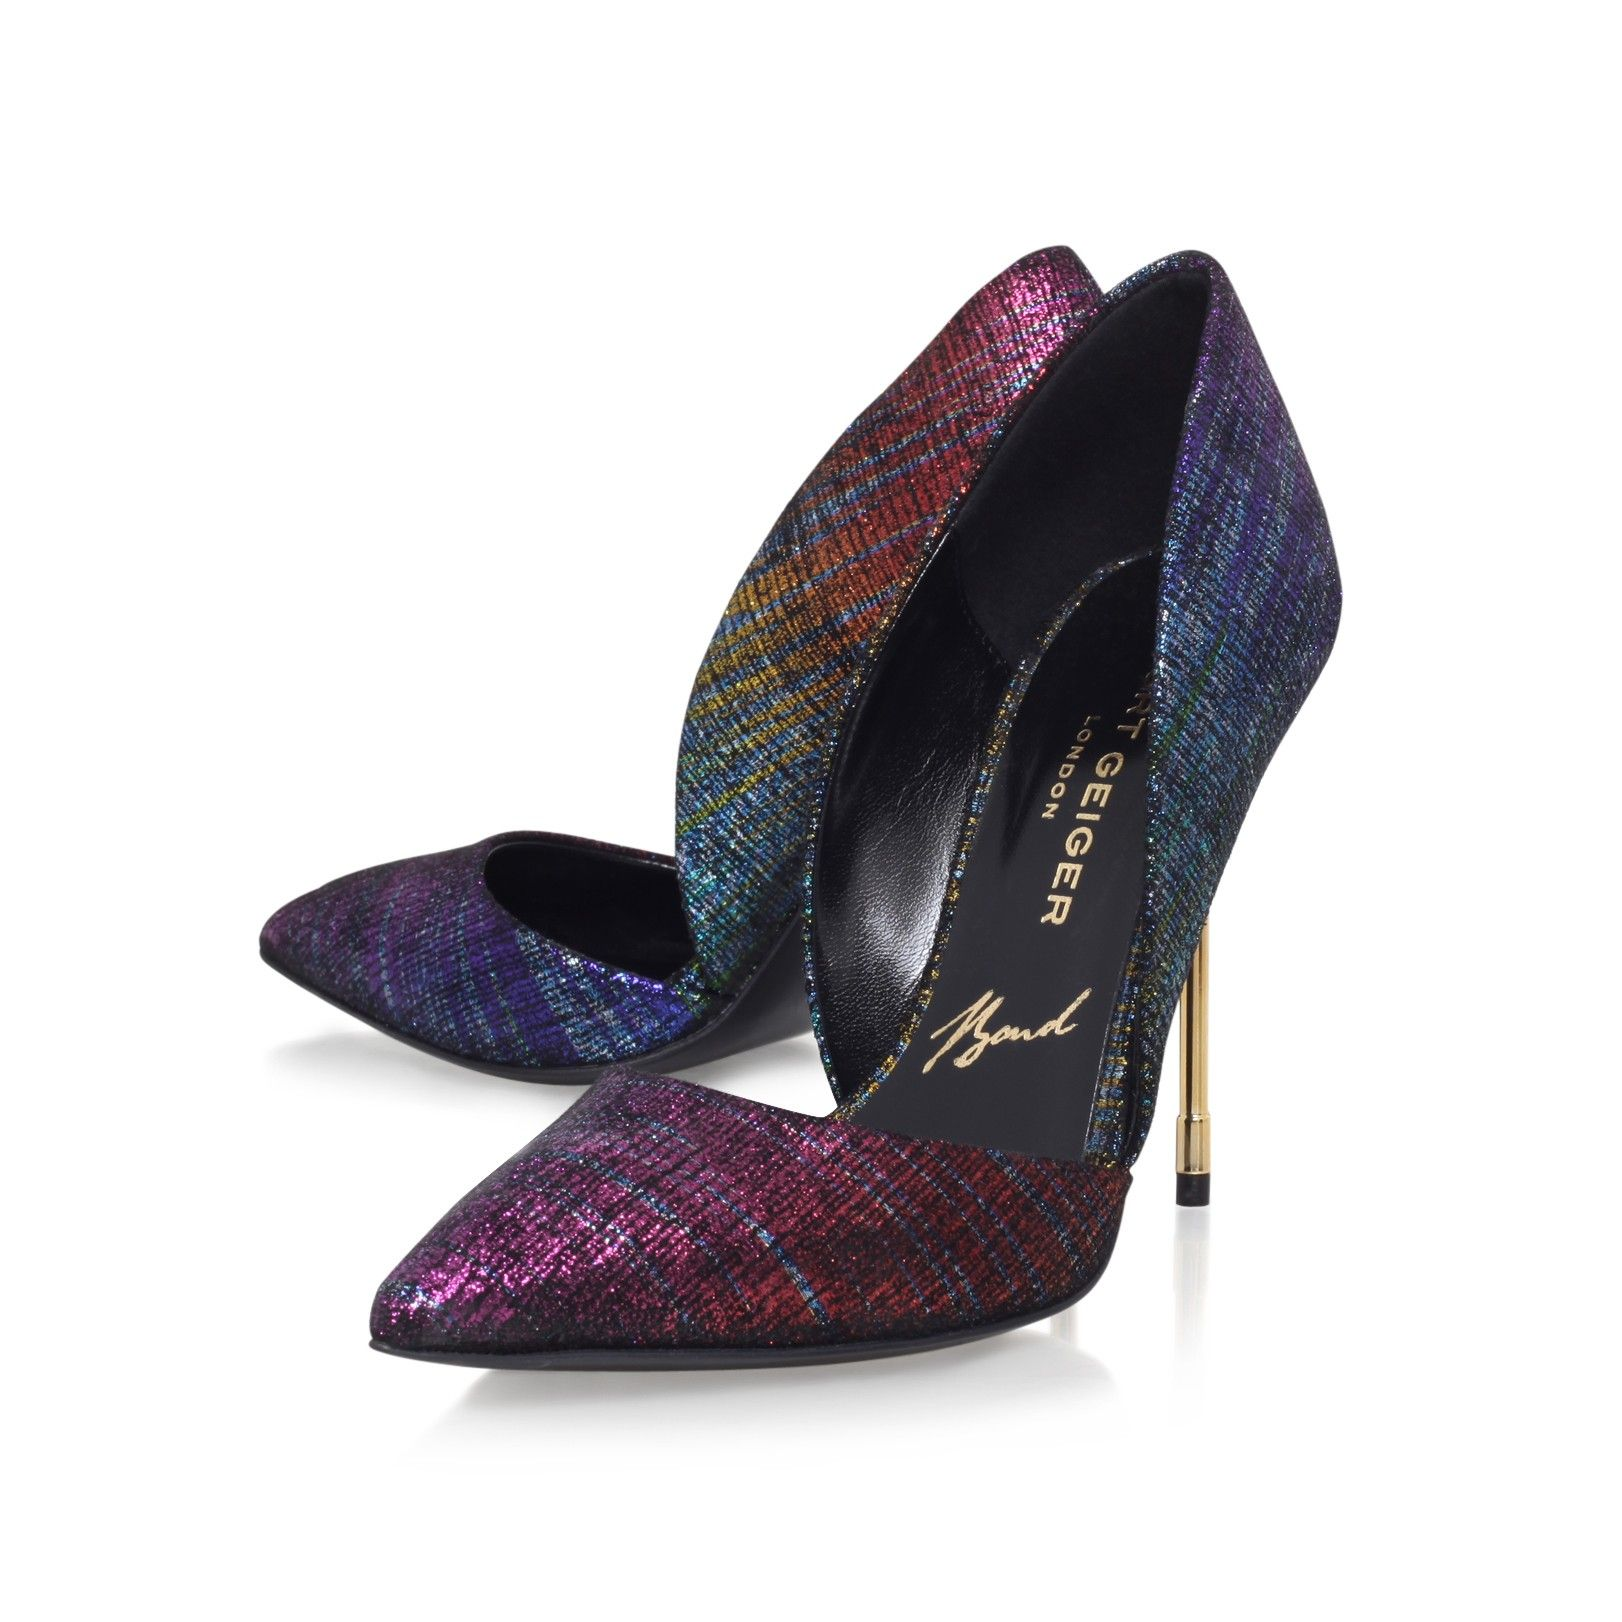 bond multi coloured high heel court shoes from Kurt Geiger London